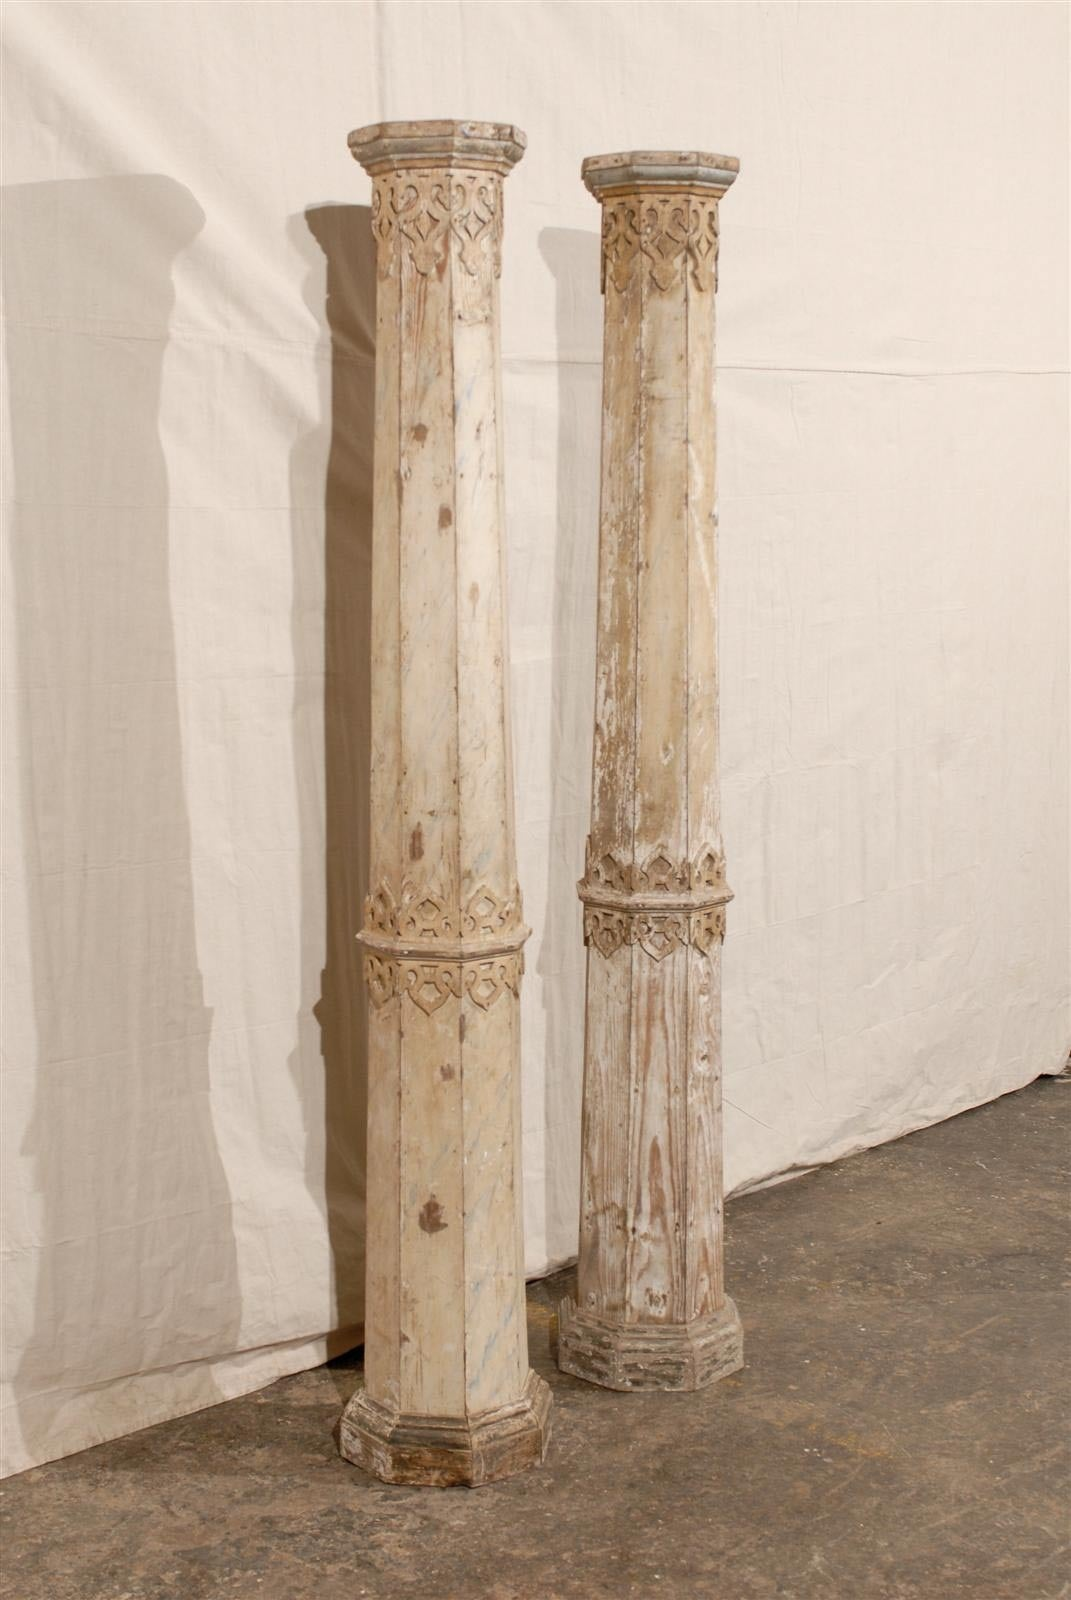 A Pair of 19th Century European Slender Wooden Columns with Delicate Decor 4